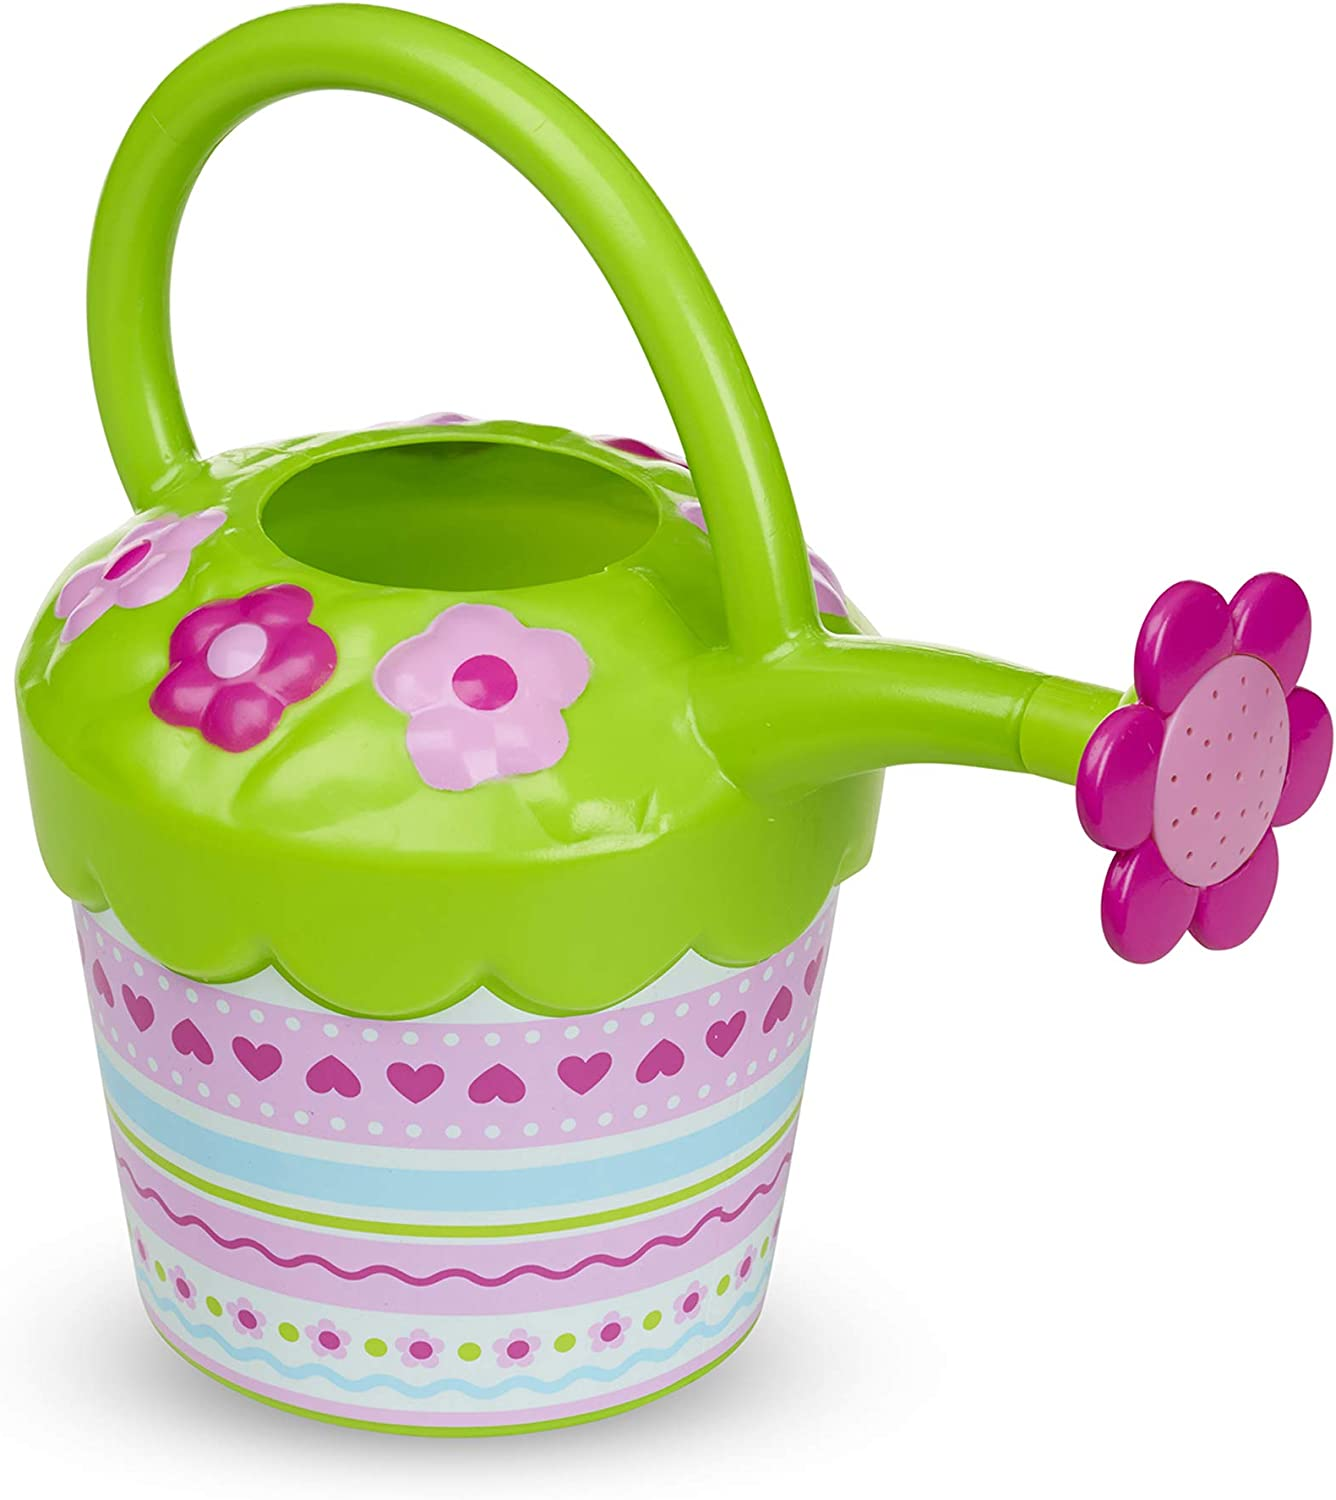 Melissa & Doug Pretty Petals Watering Can: Toy: Toys & Games